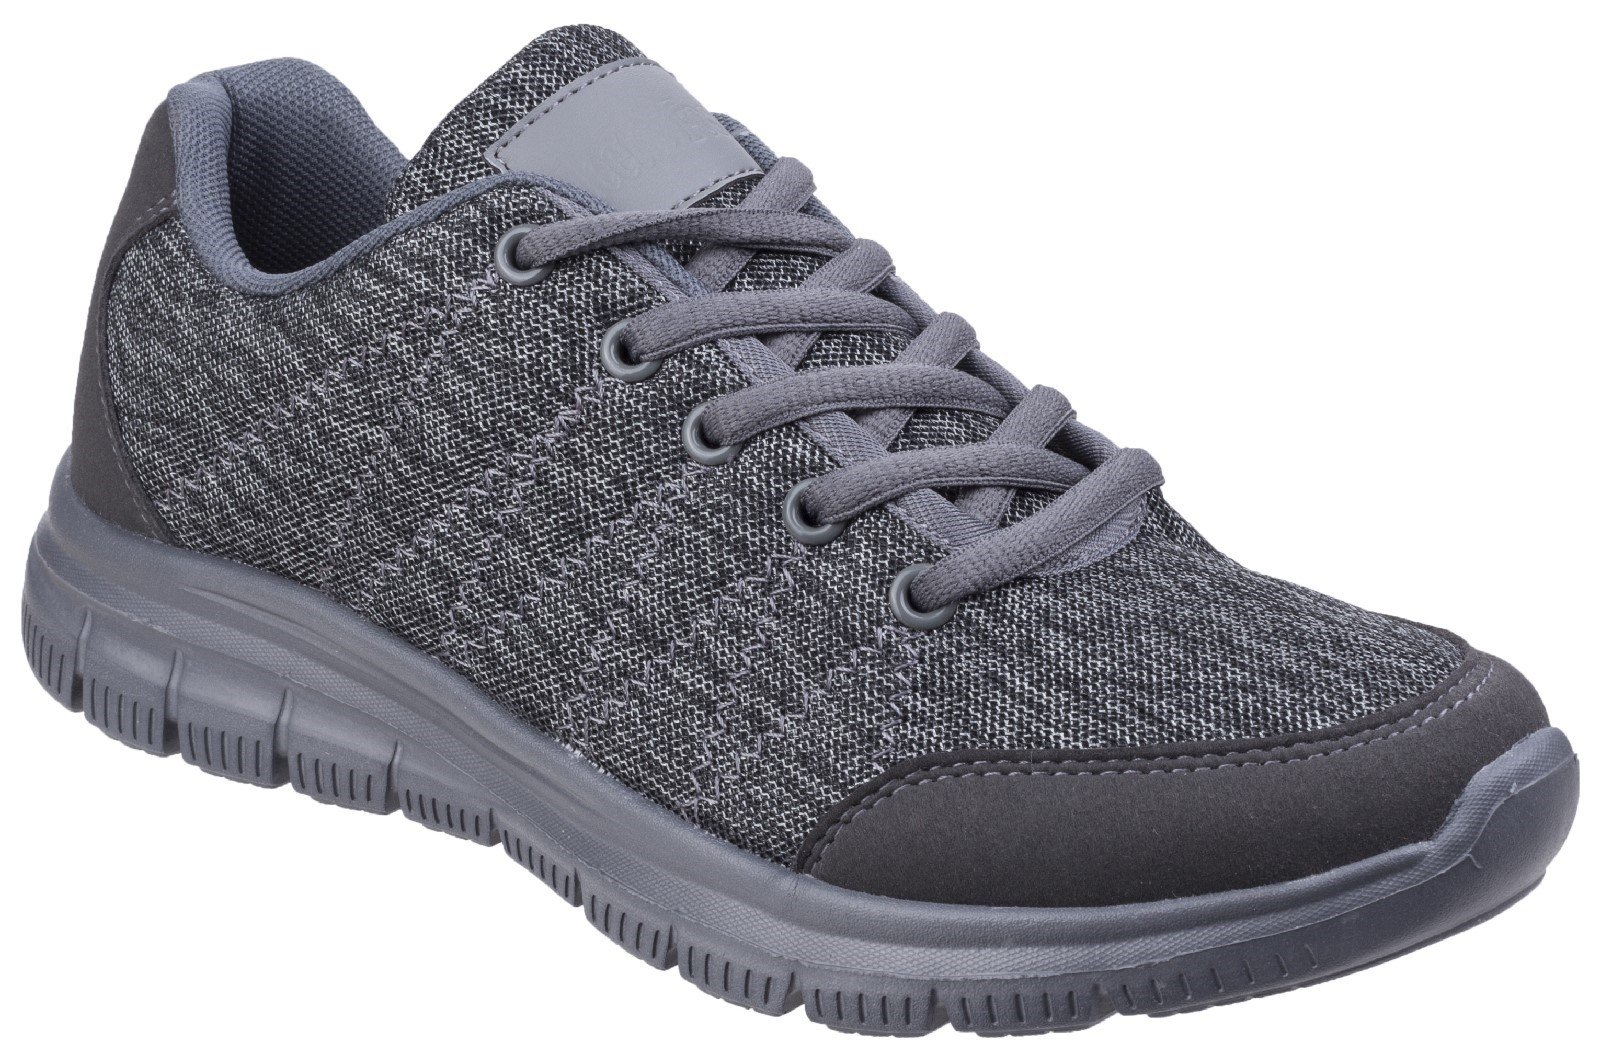 Fleet & Foster Women's Elanor Lace Up Trainer Various Colours 27155-45626 - Grey 3